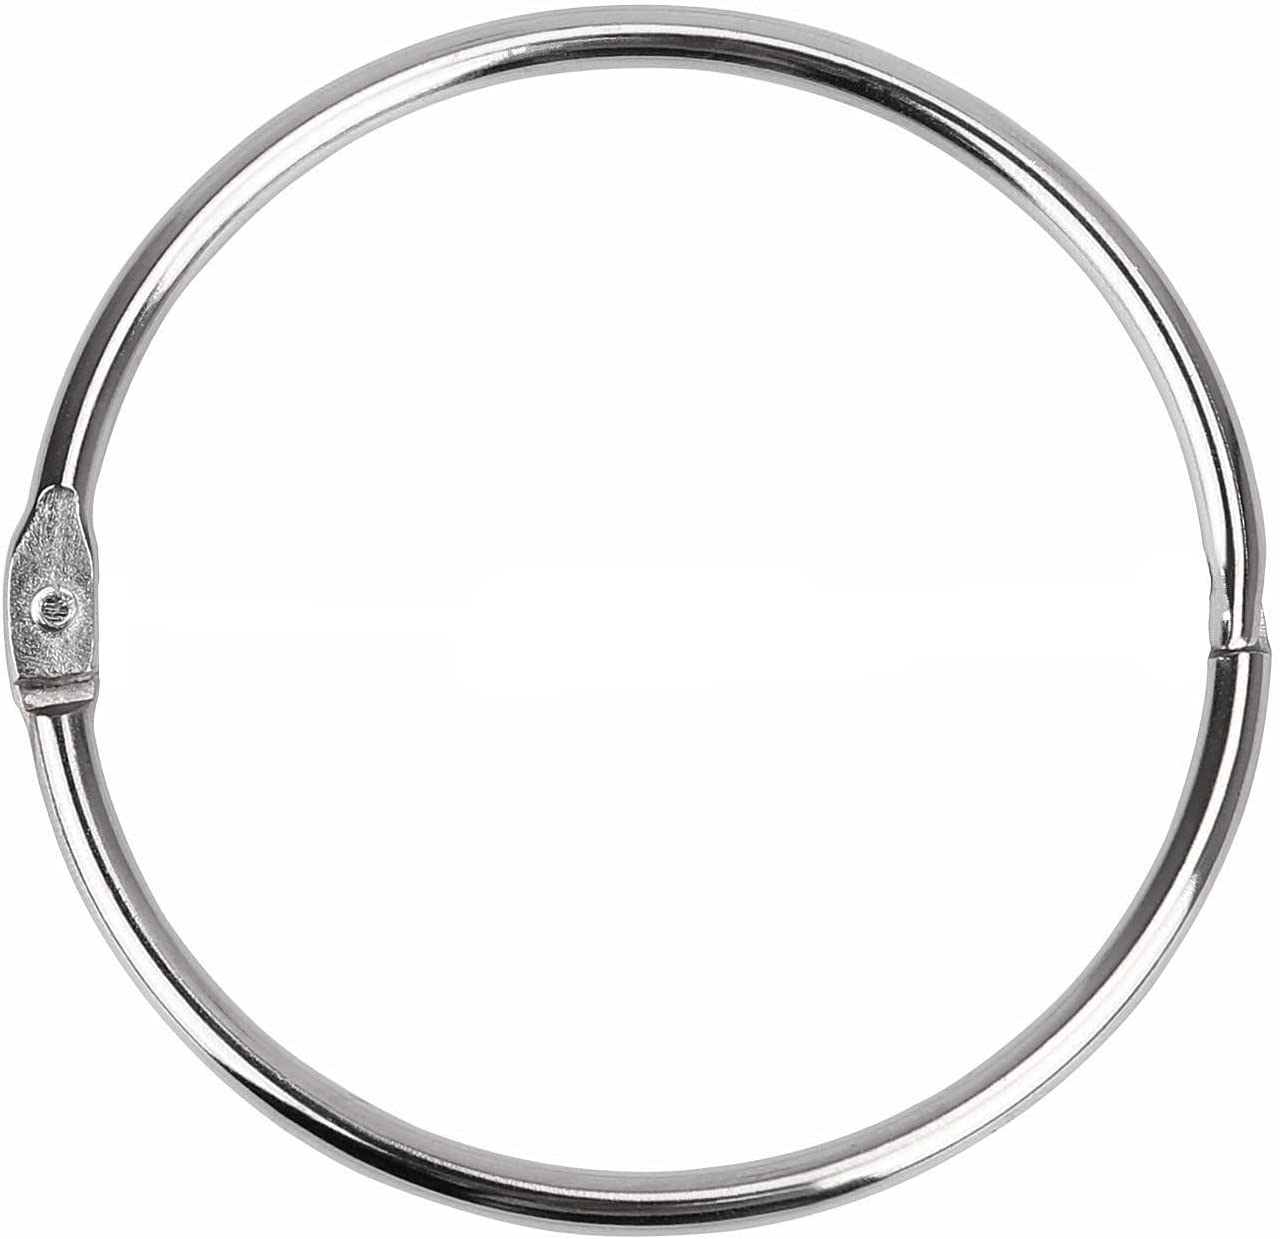 Binder Rings Loose Leaf Book Ring (8 Pack) Large 2.75 Inch Diameter Nickel Plated (Silver )